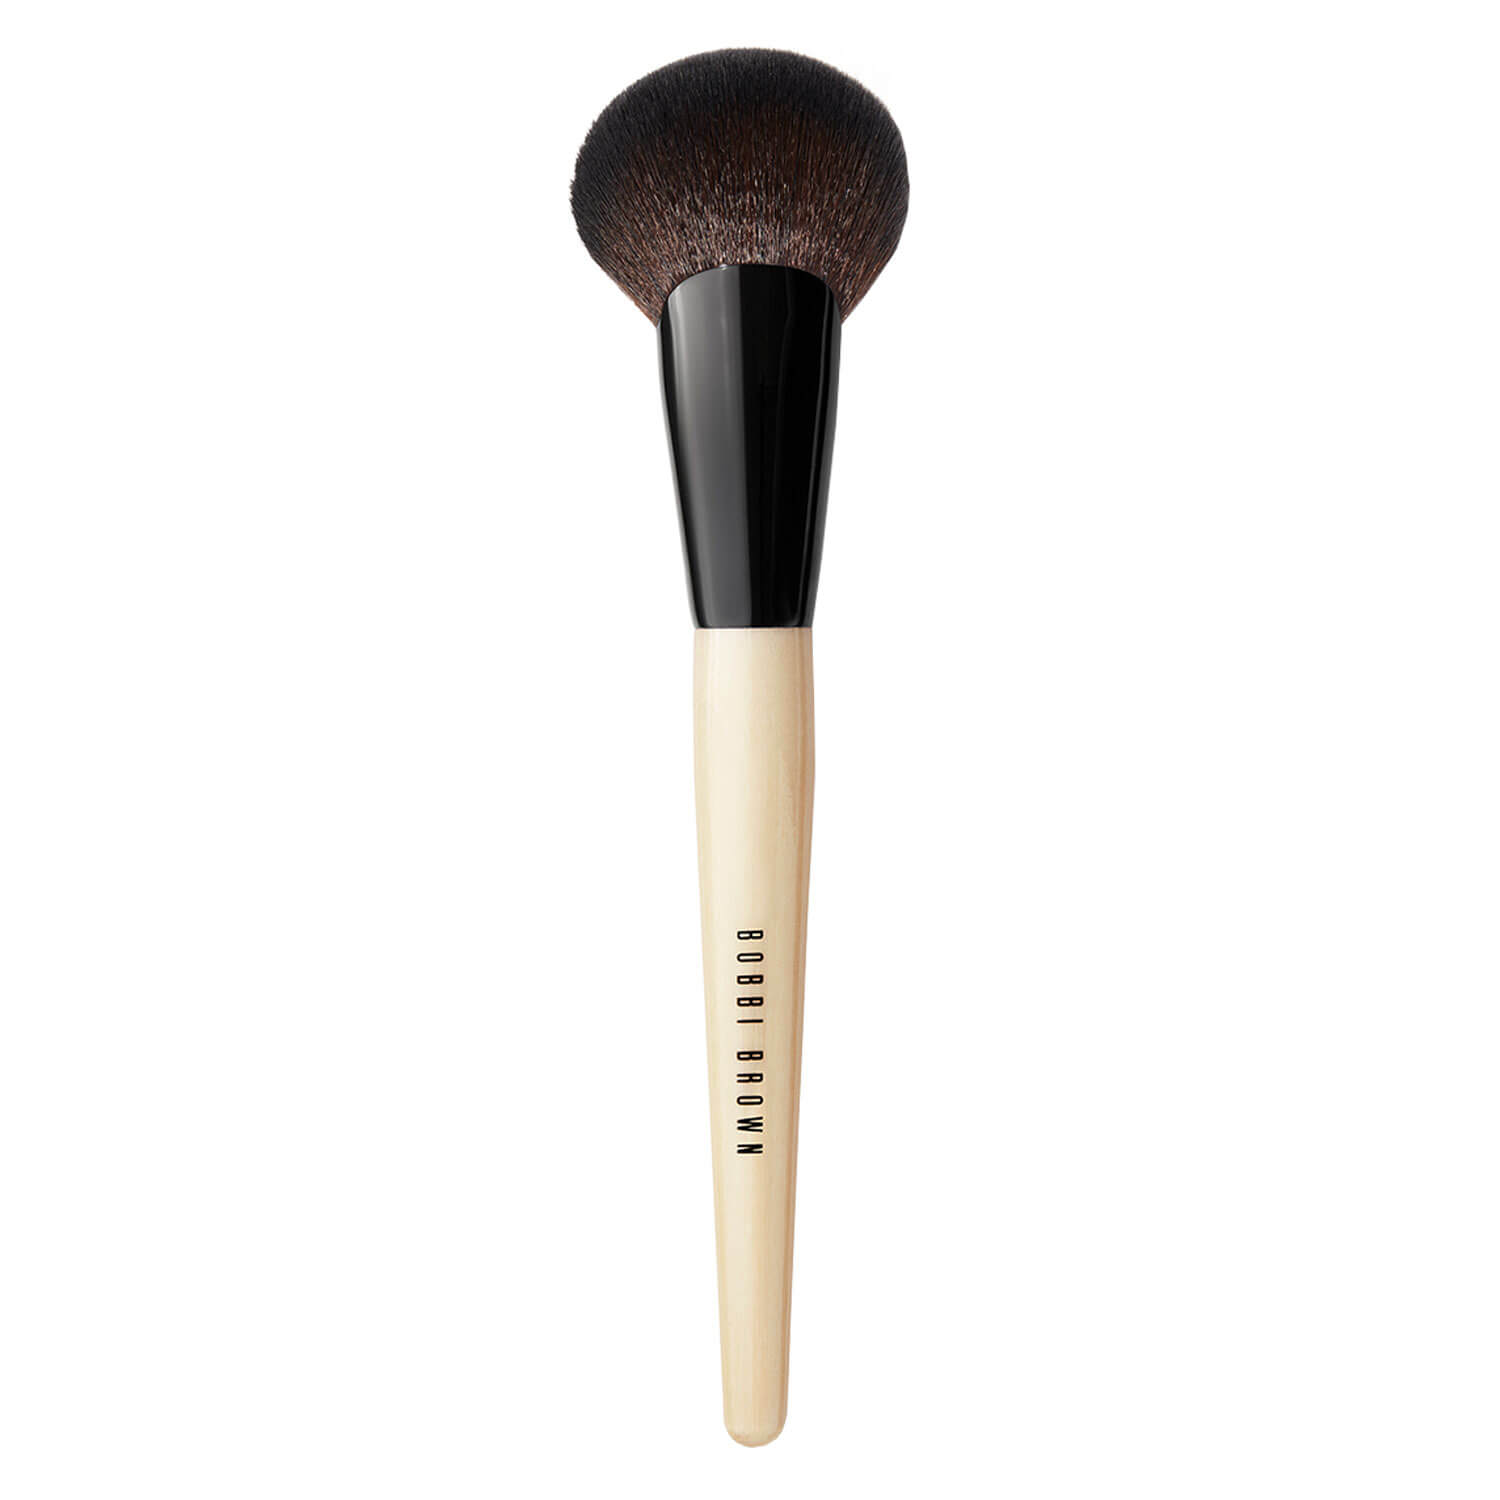 BB Tools - Precise Blending Brush